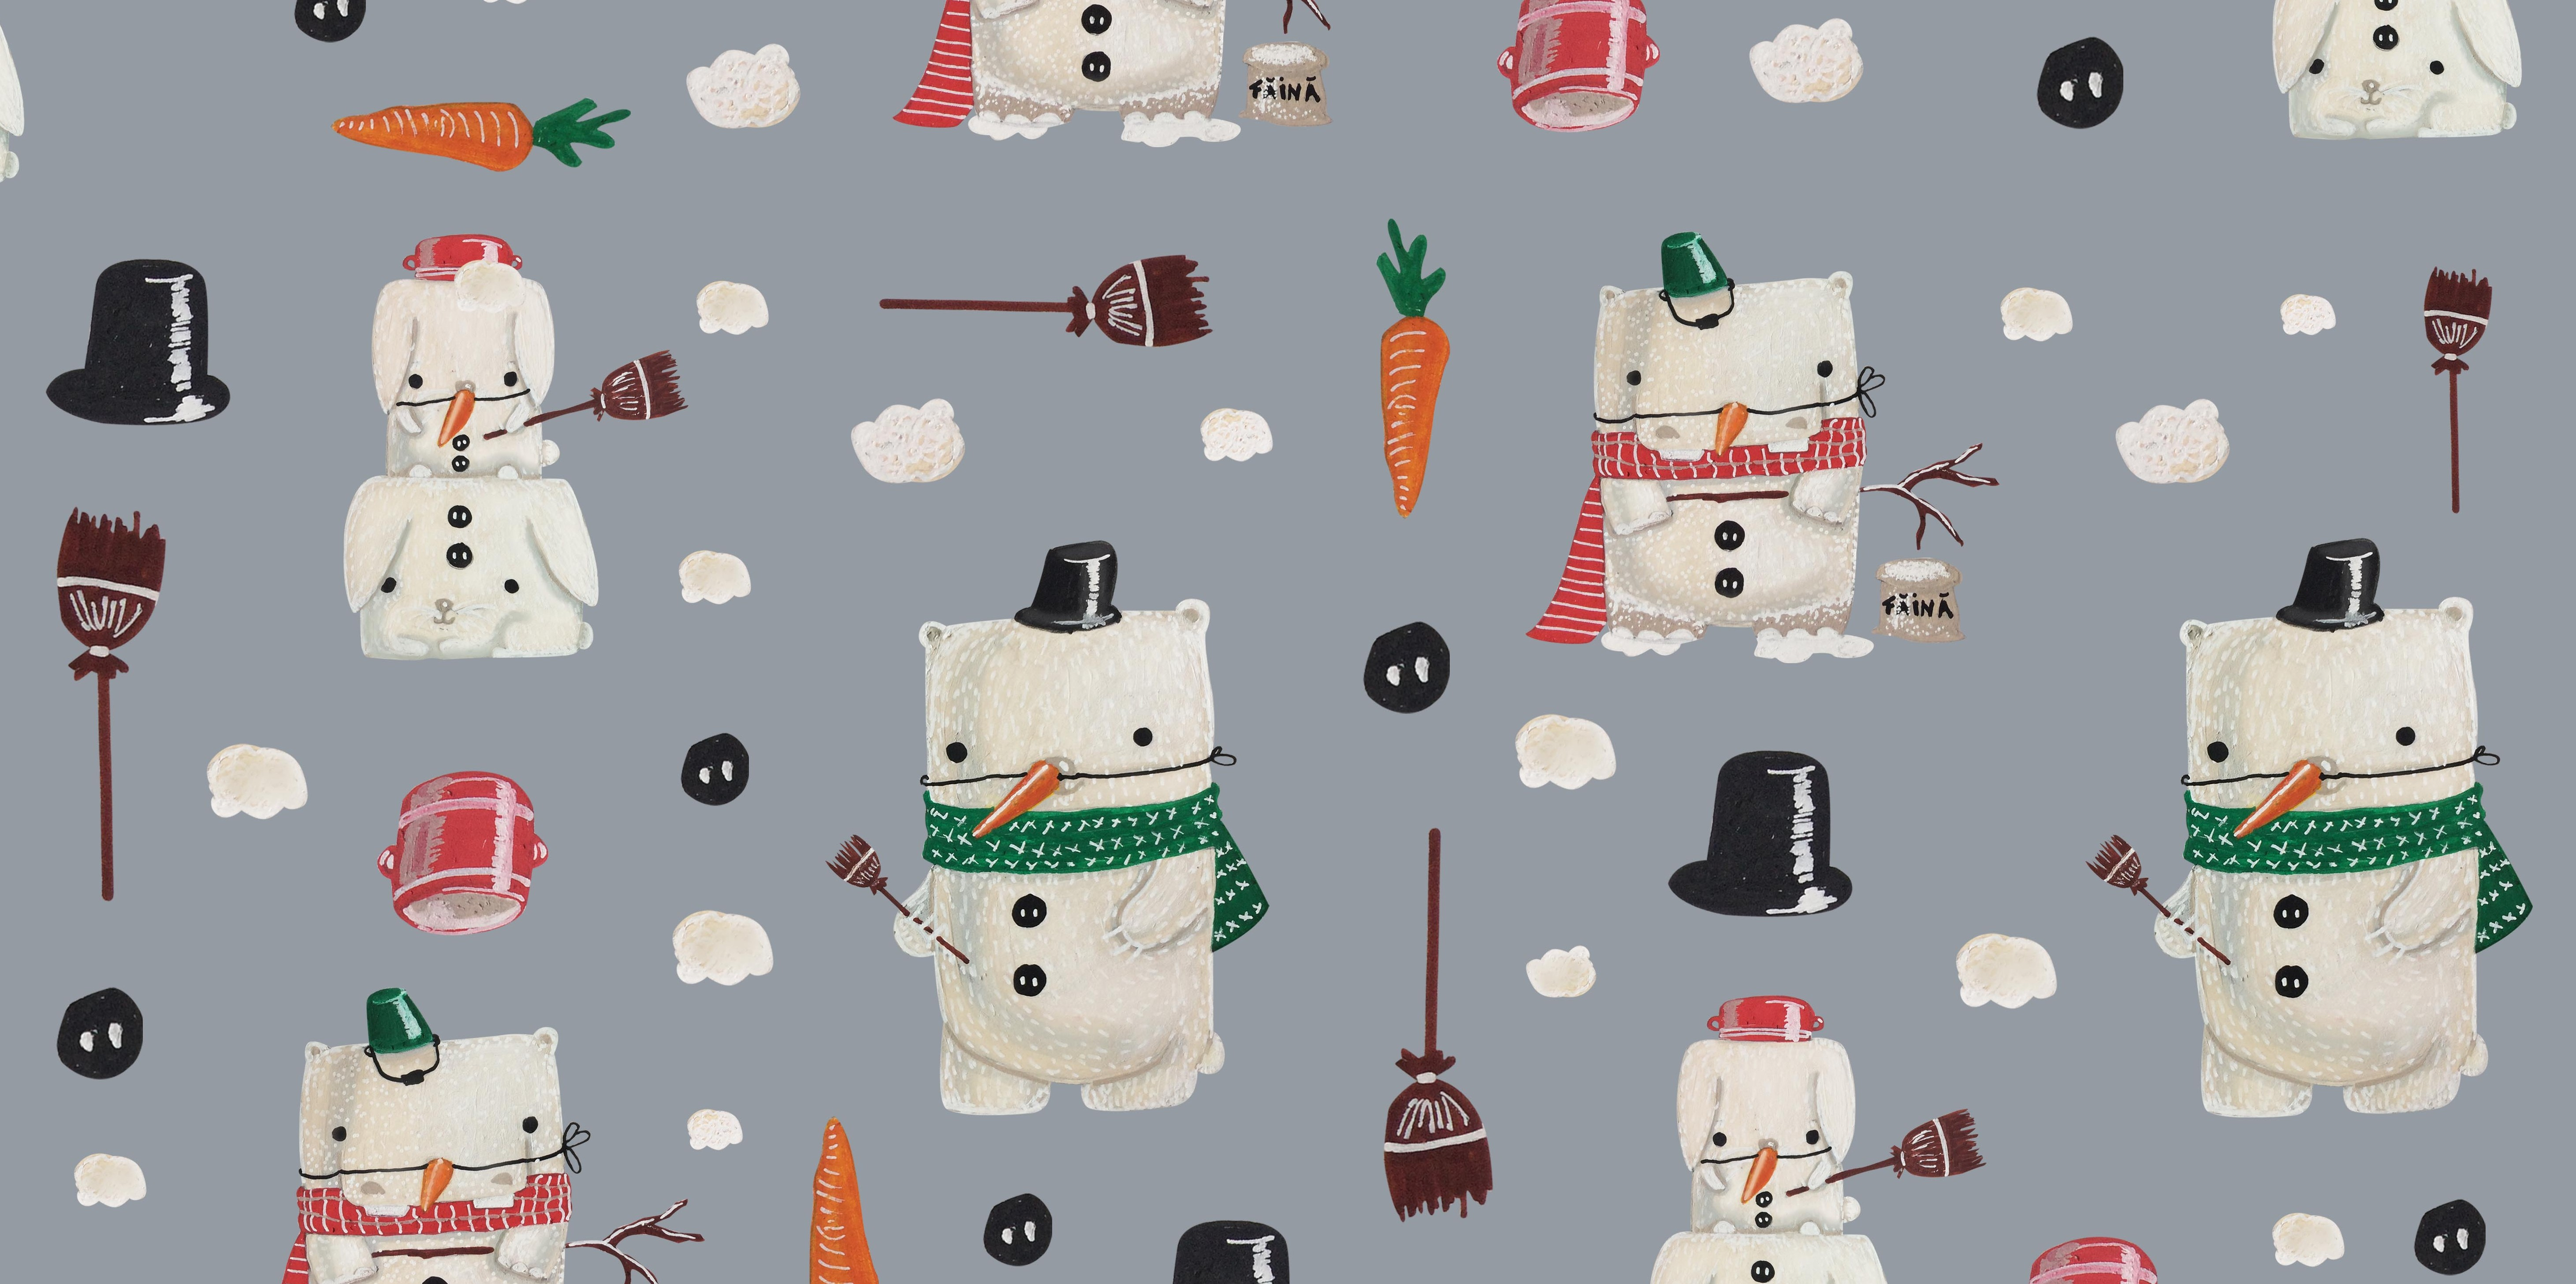 pattern design wrapping paper illustration snowman cute funny carturesti